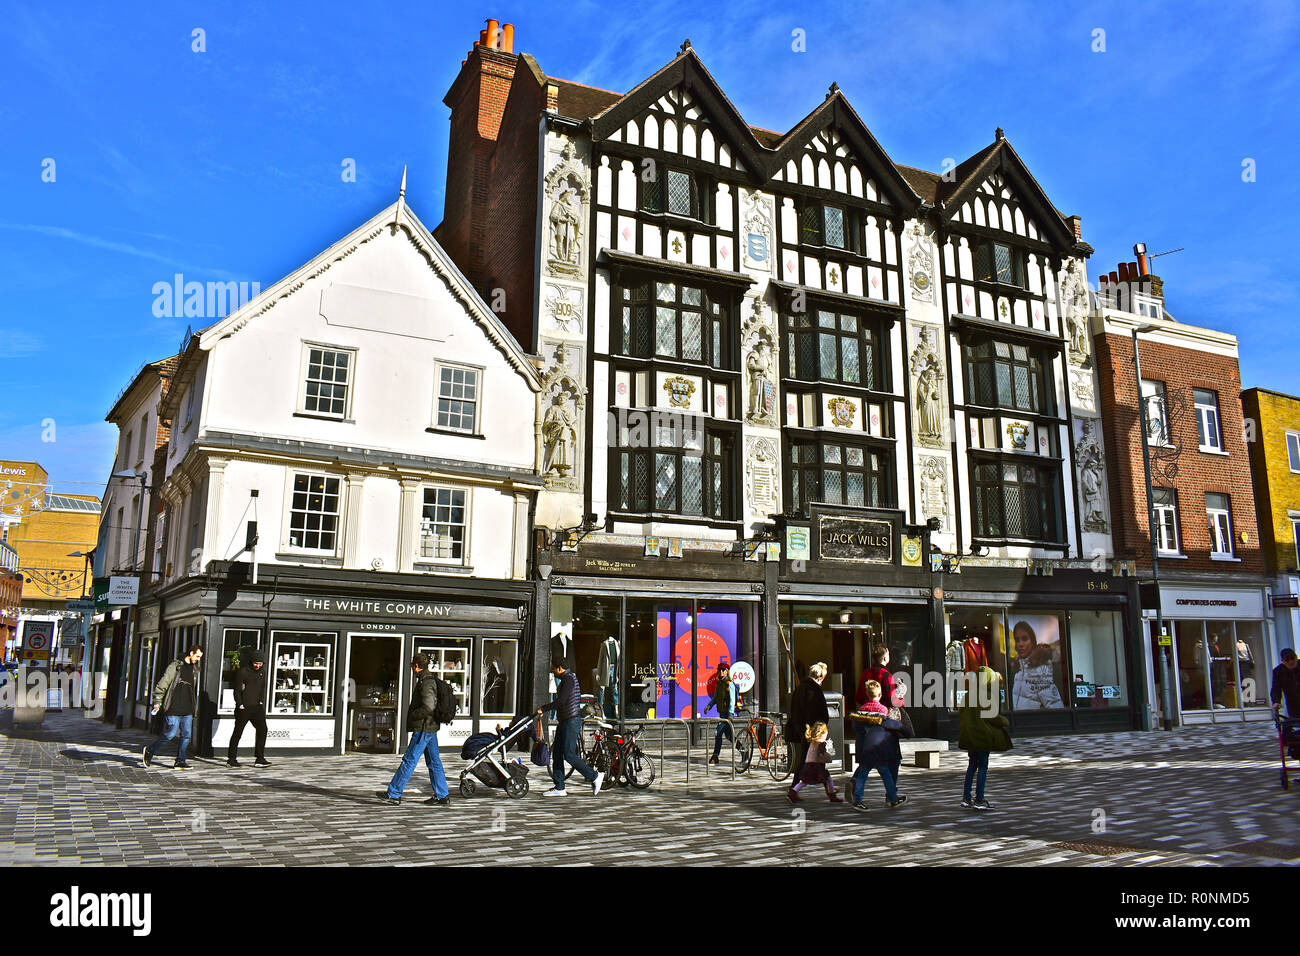 The retailer Jack Wills occupies this old building but the Tudor style facade was only added in early 1900s. Kingston upon Thames, London,England. - Stock Image